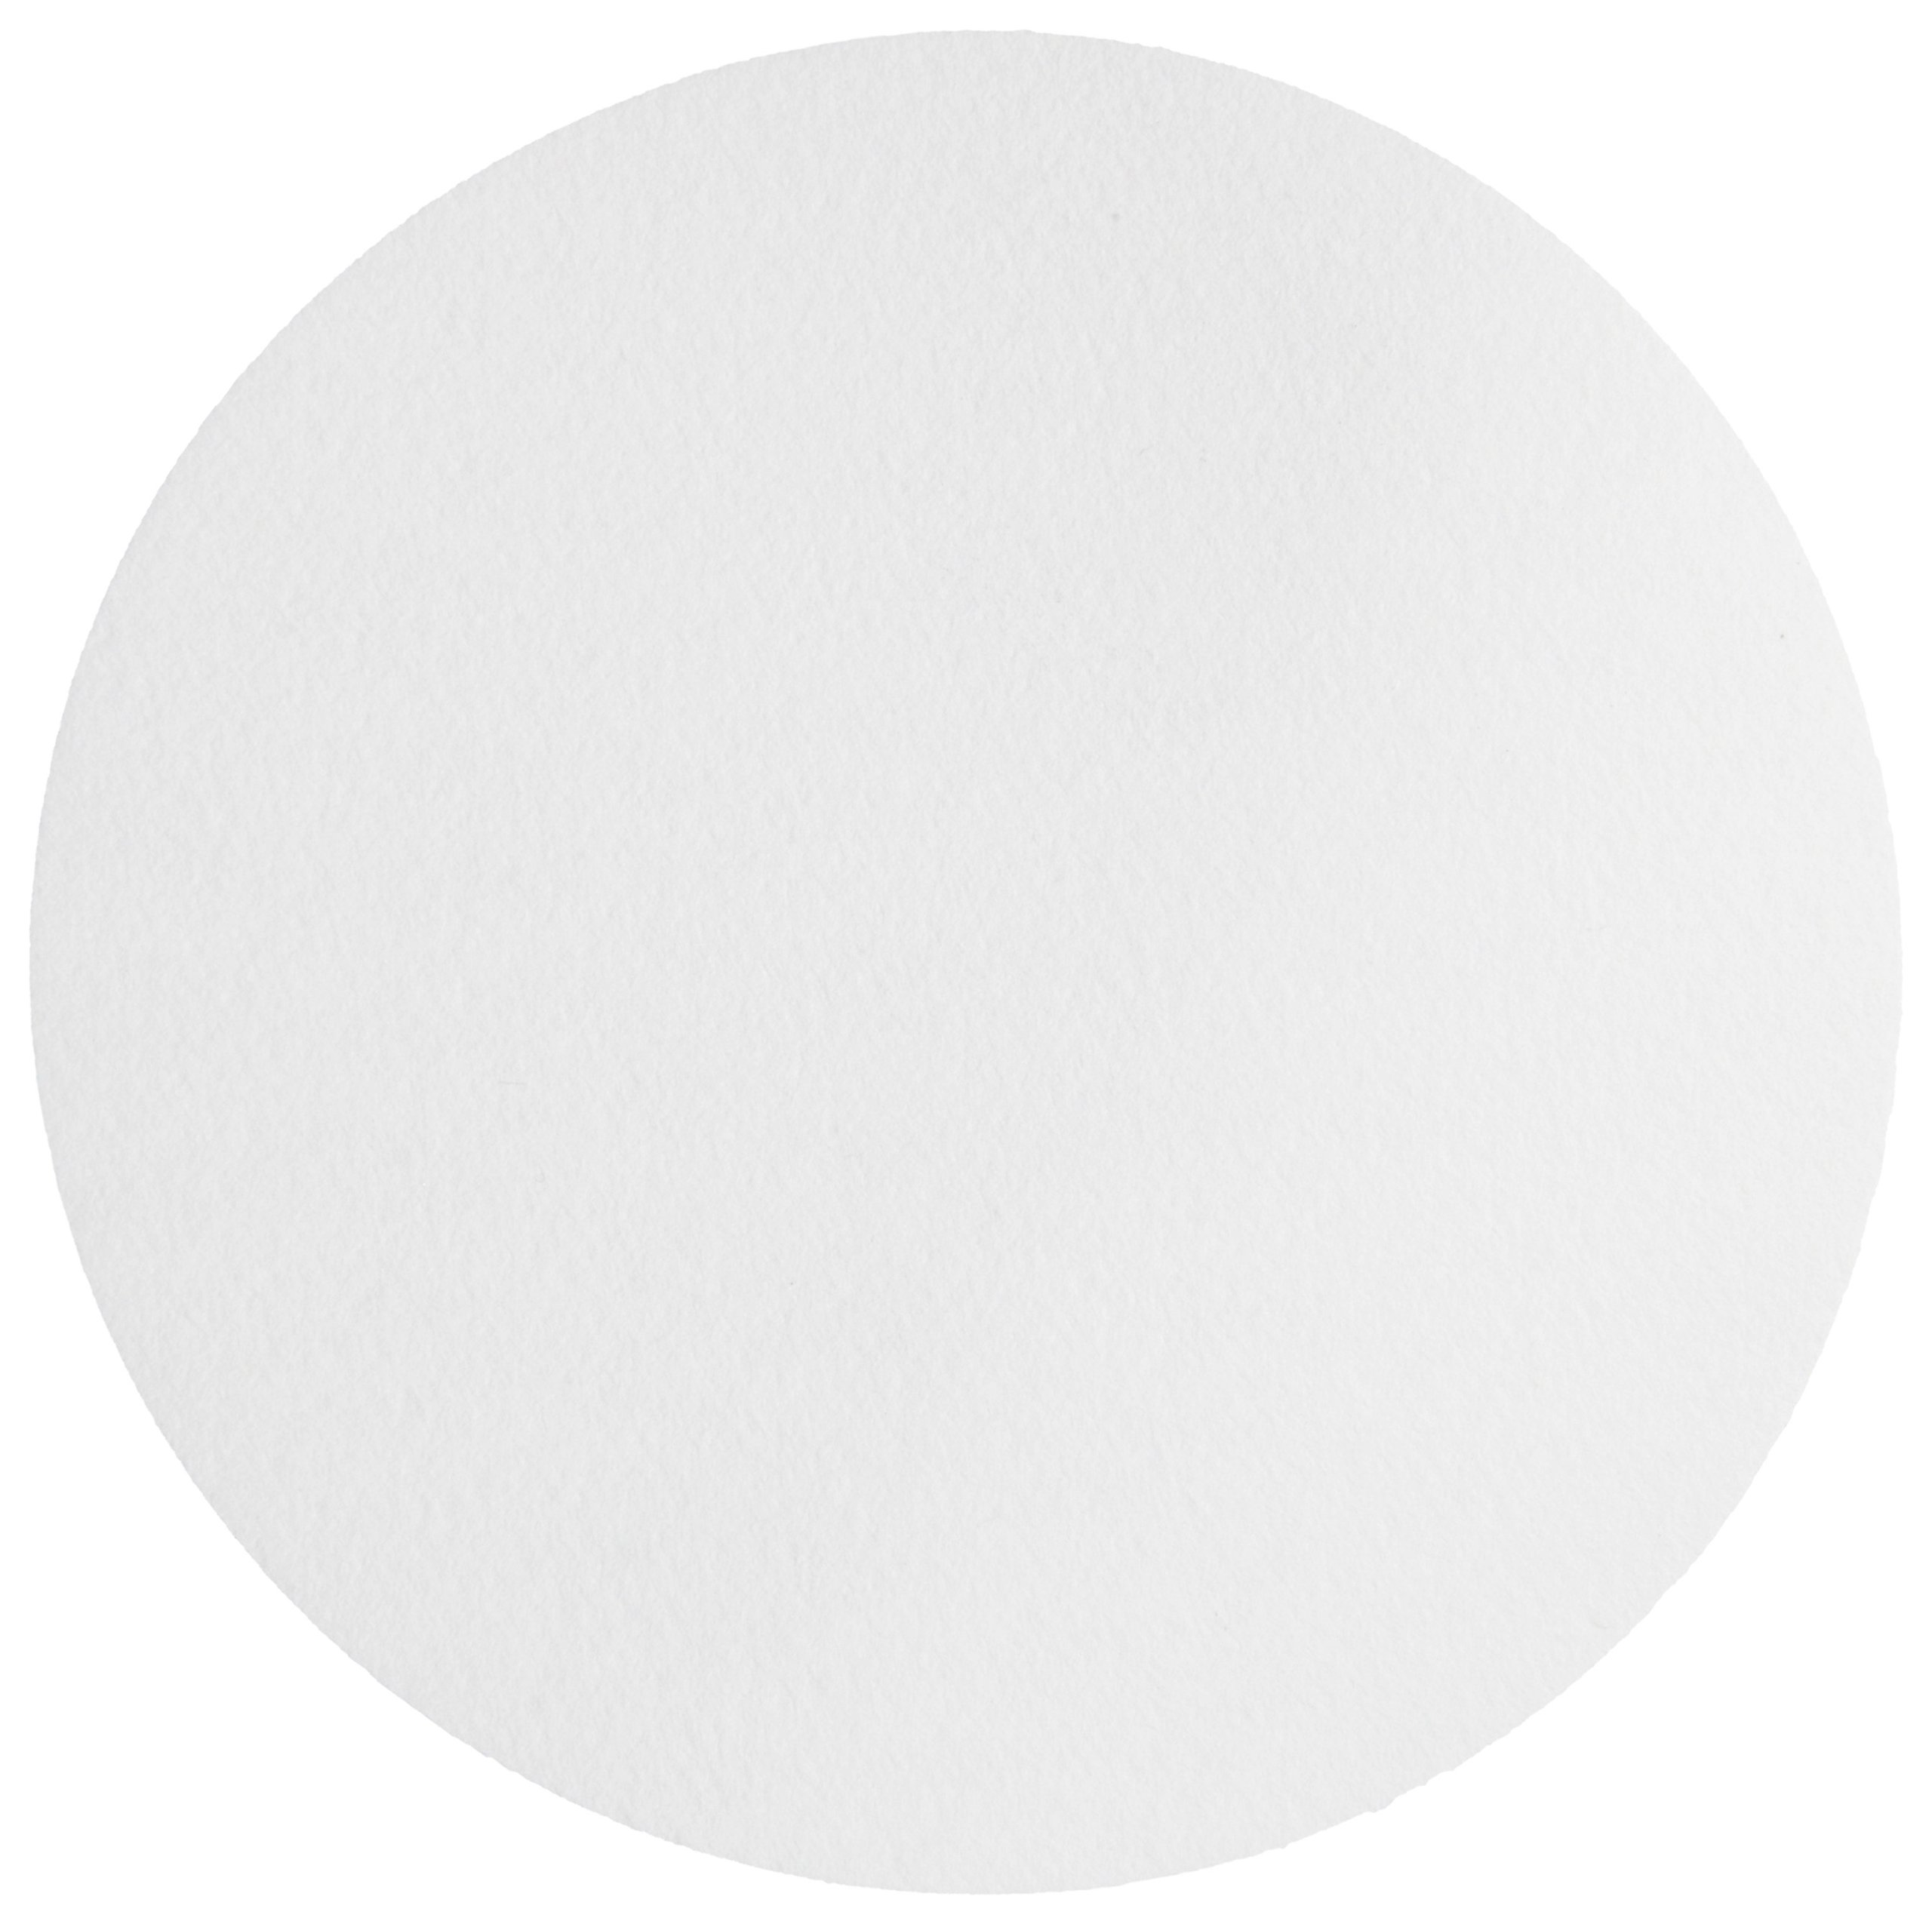 Whatman 1001-270 Quantitative Filter Paper Circles, 11 Micron, 10.5 s/100mL/sq inch Flow Rate, Grade 1, 270mm Diameter (Pack of 100) by Whatman